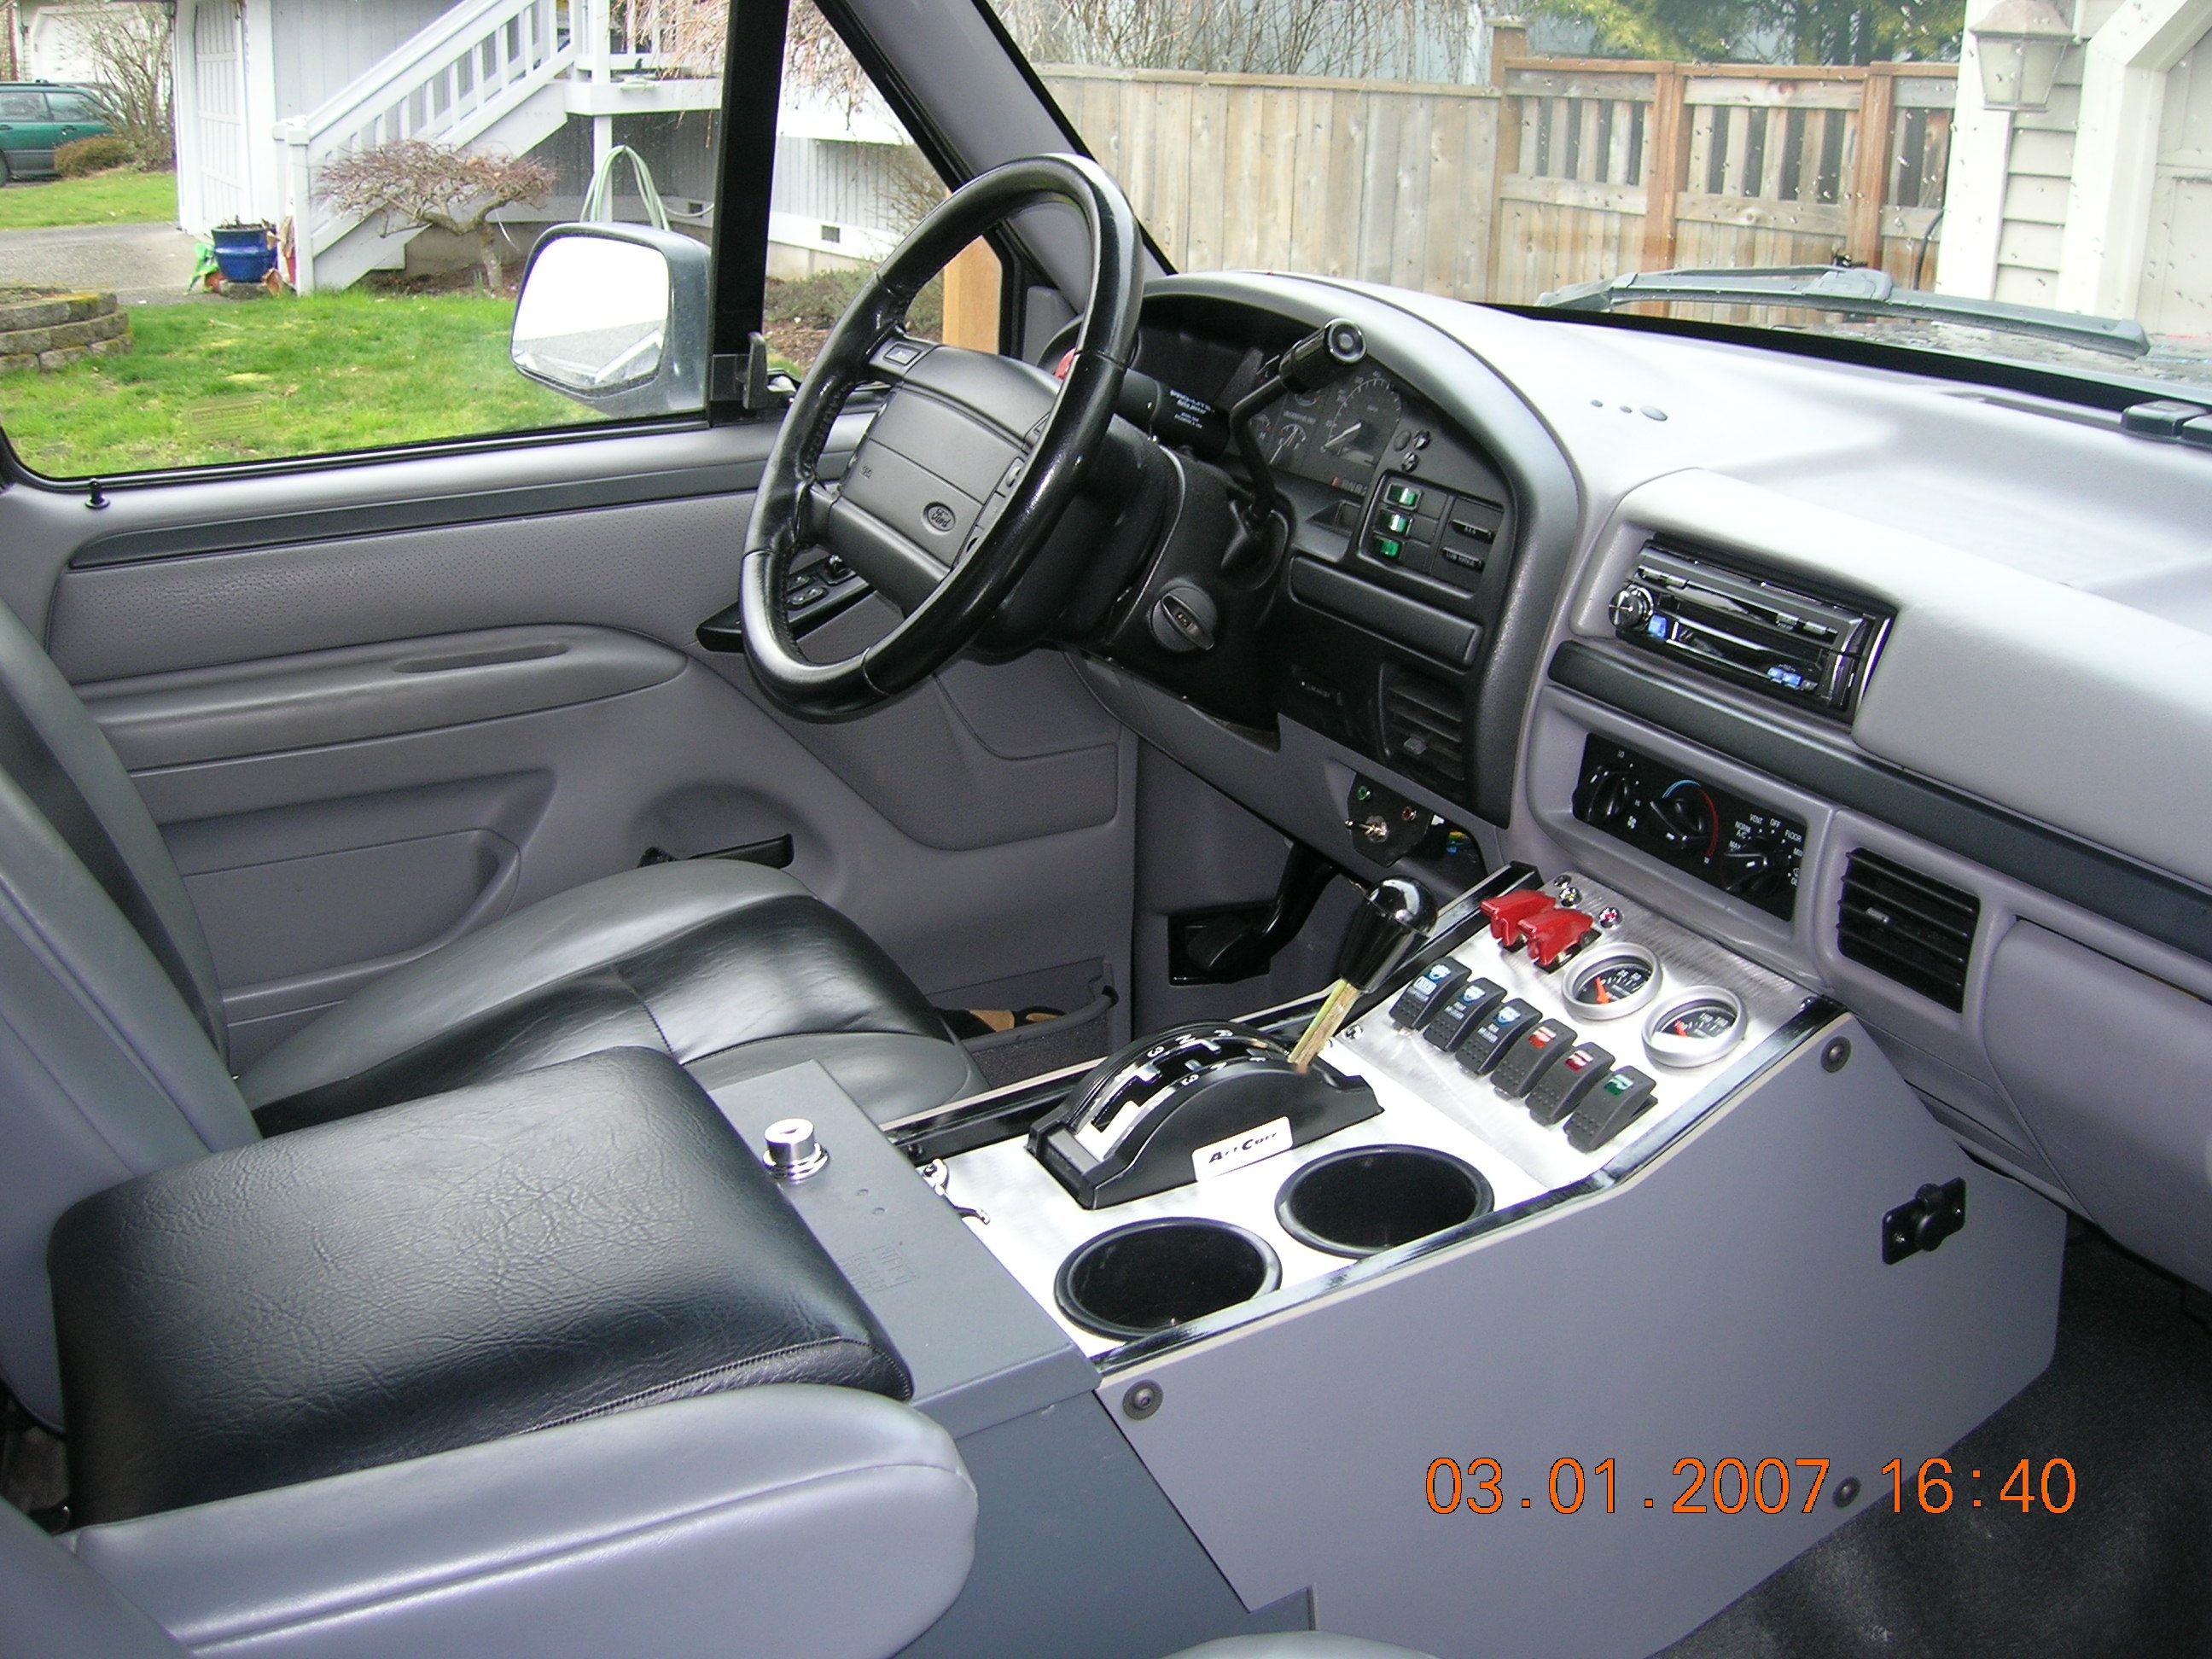 1996 ford bronco interior diymid com stuff i wont for my bronco pinterest ford bronco